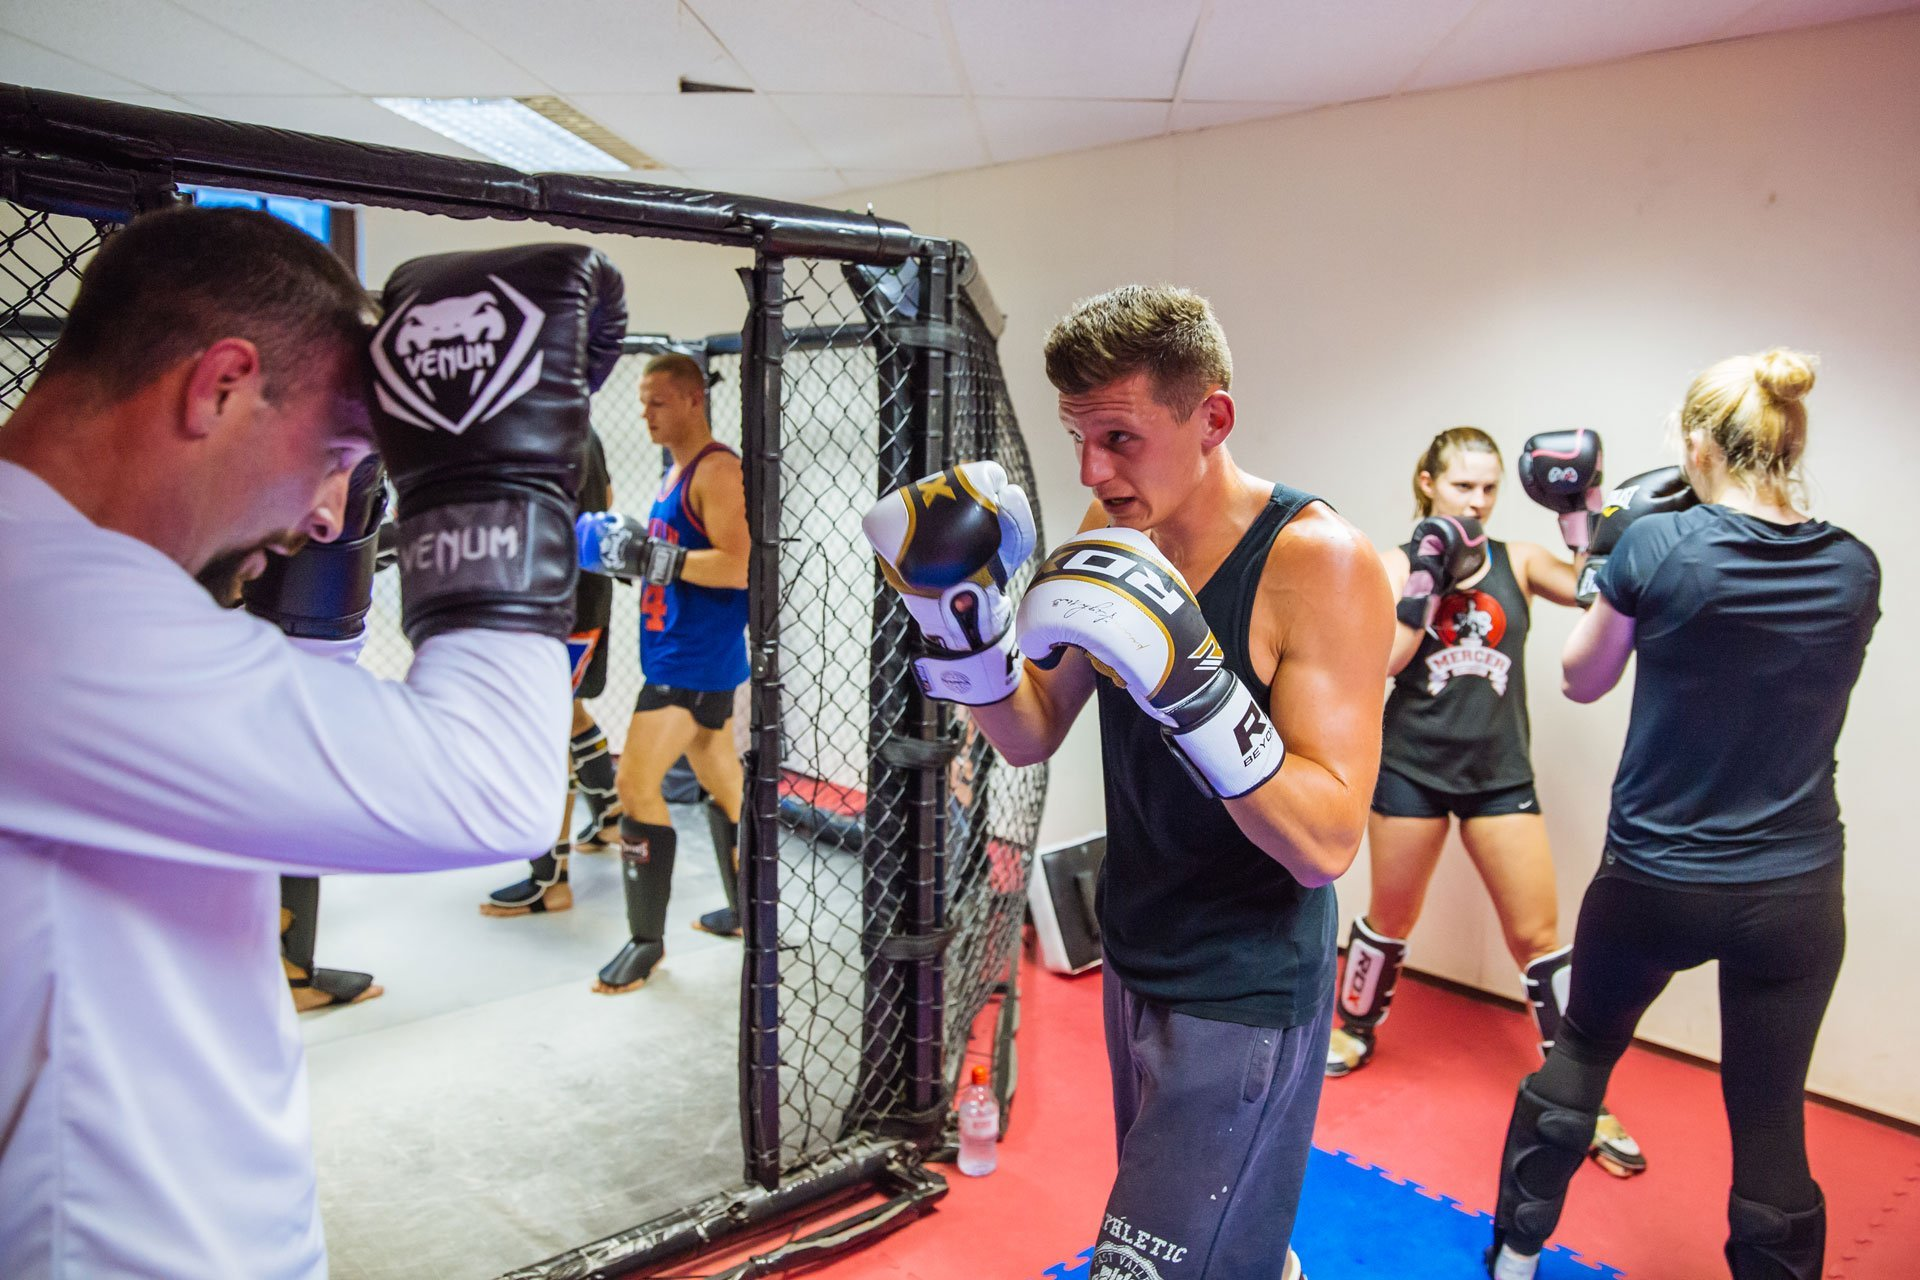 Sparring